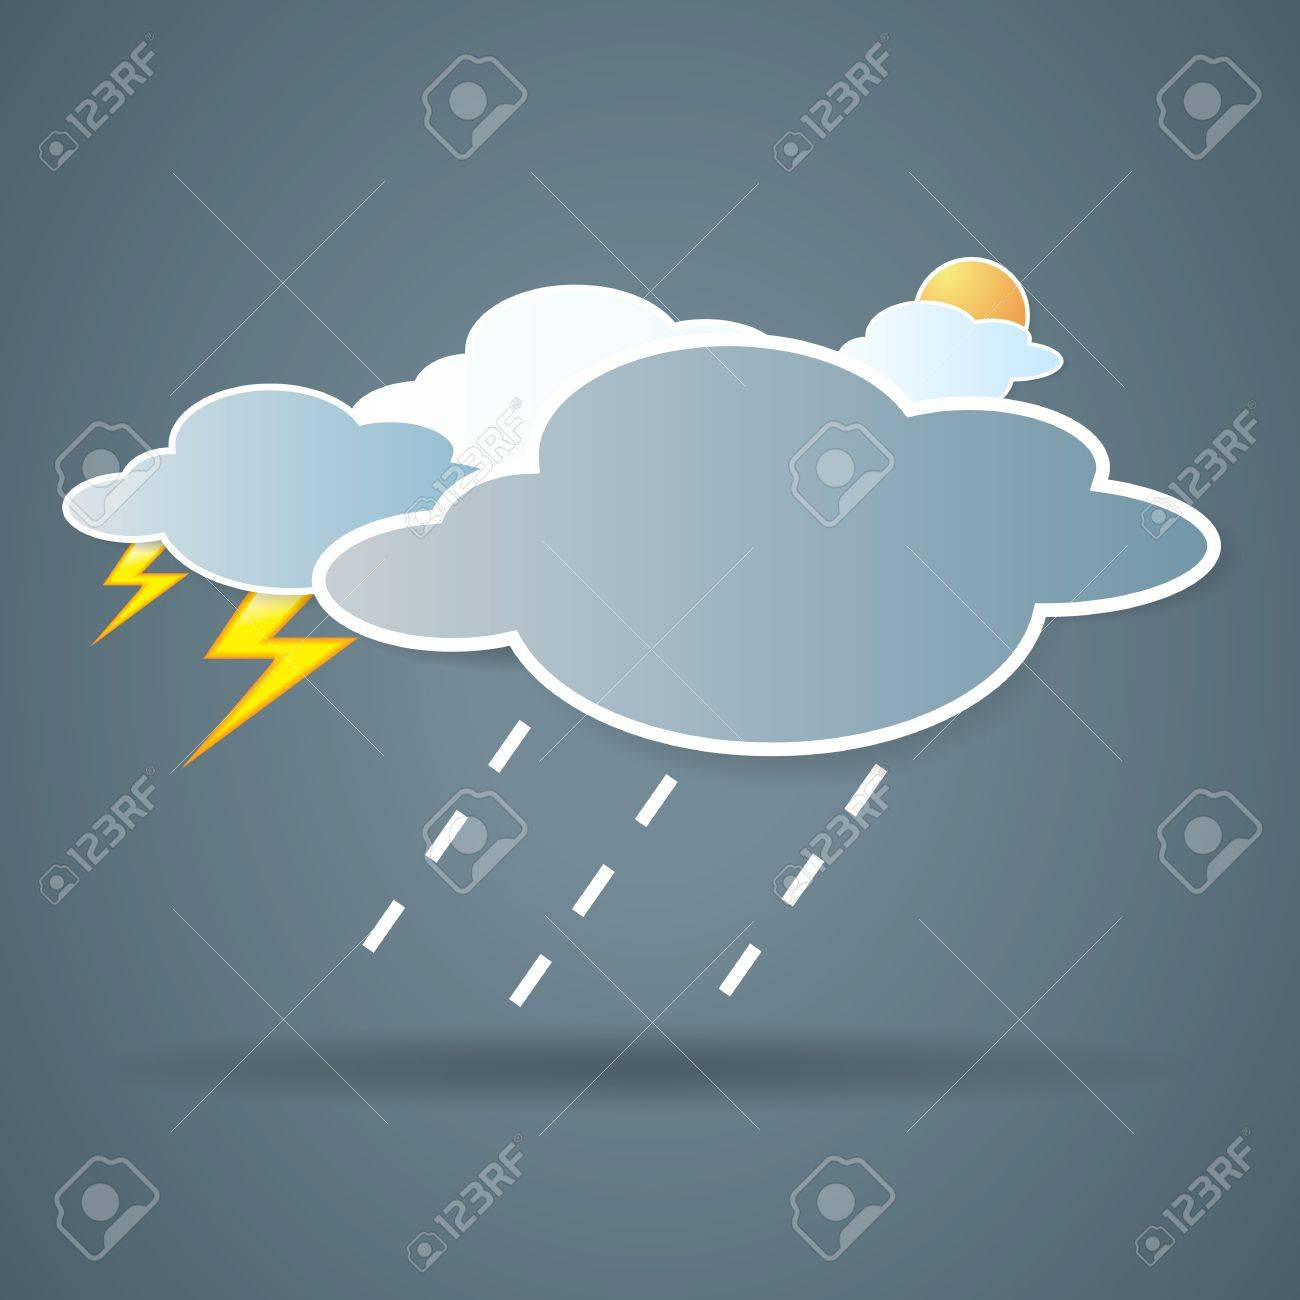 collection of clouds, Weather icon for design. Stock Vector - 17521869